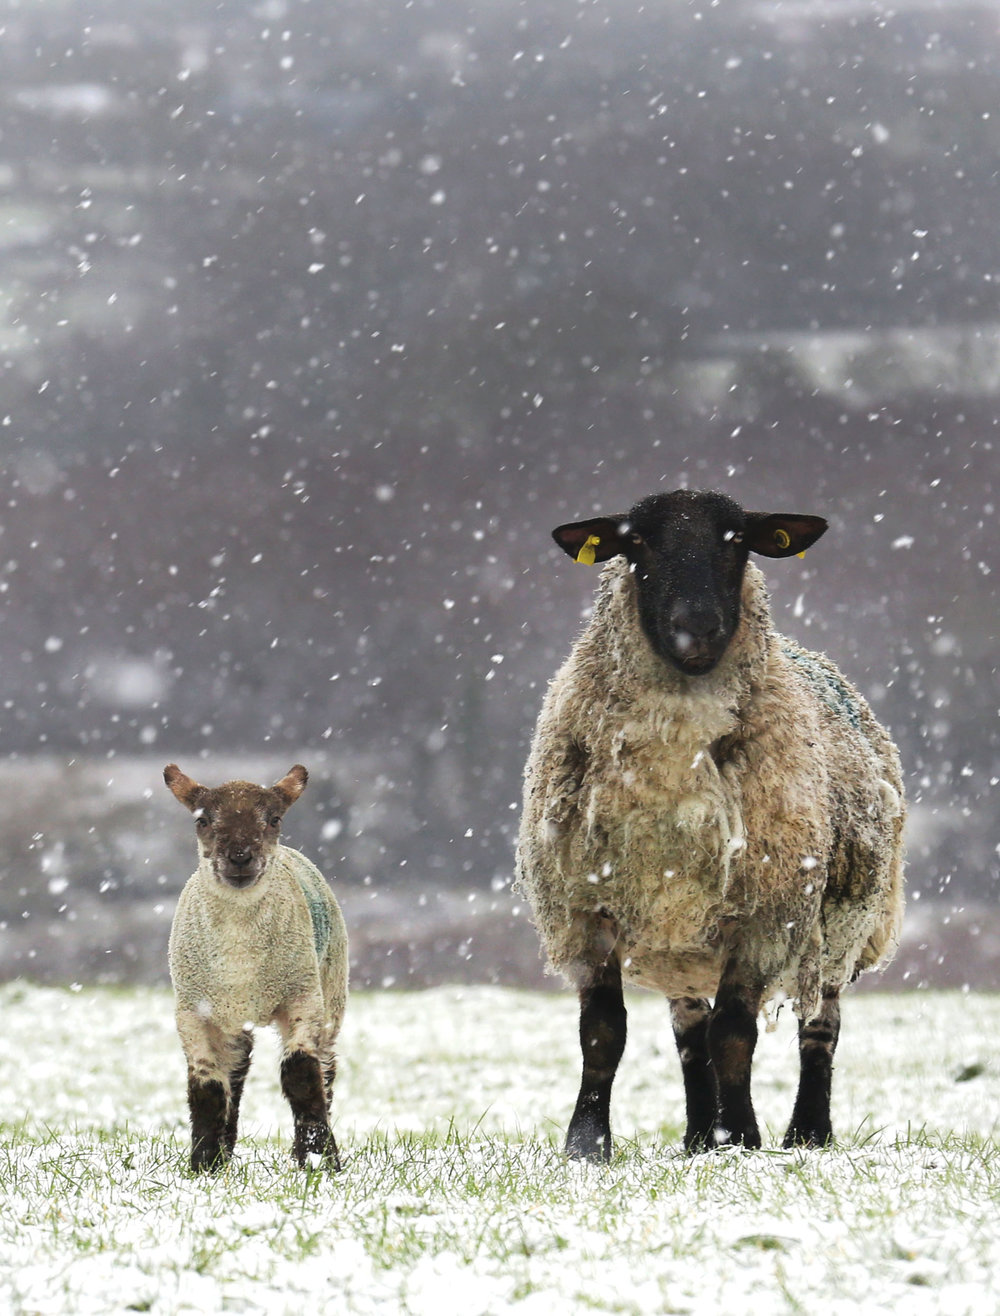 A Ewe and Lamb endure the snow in early spring